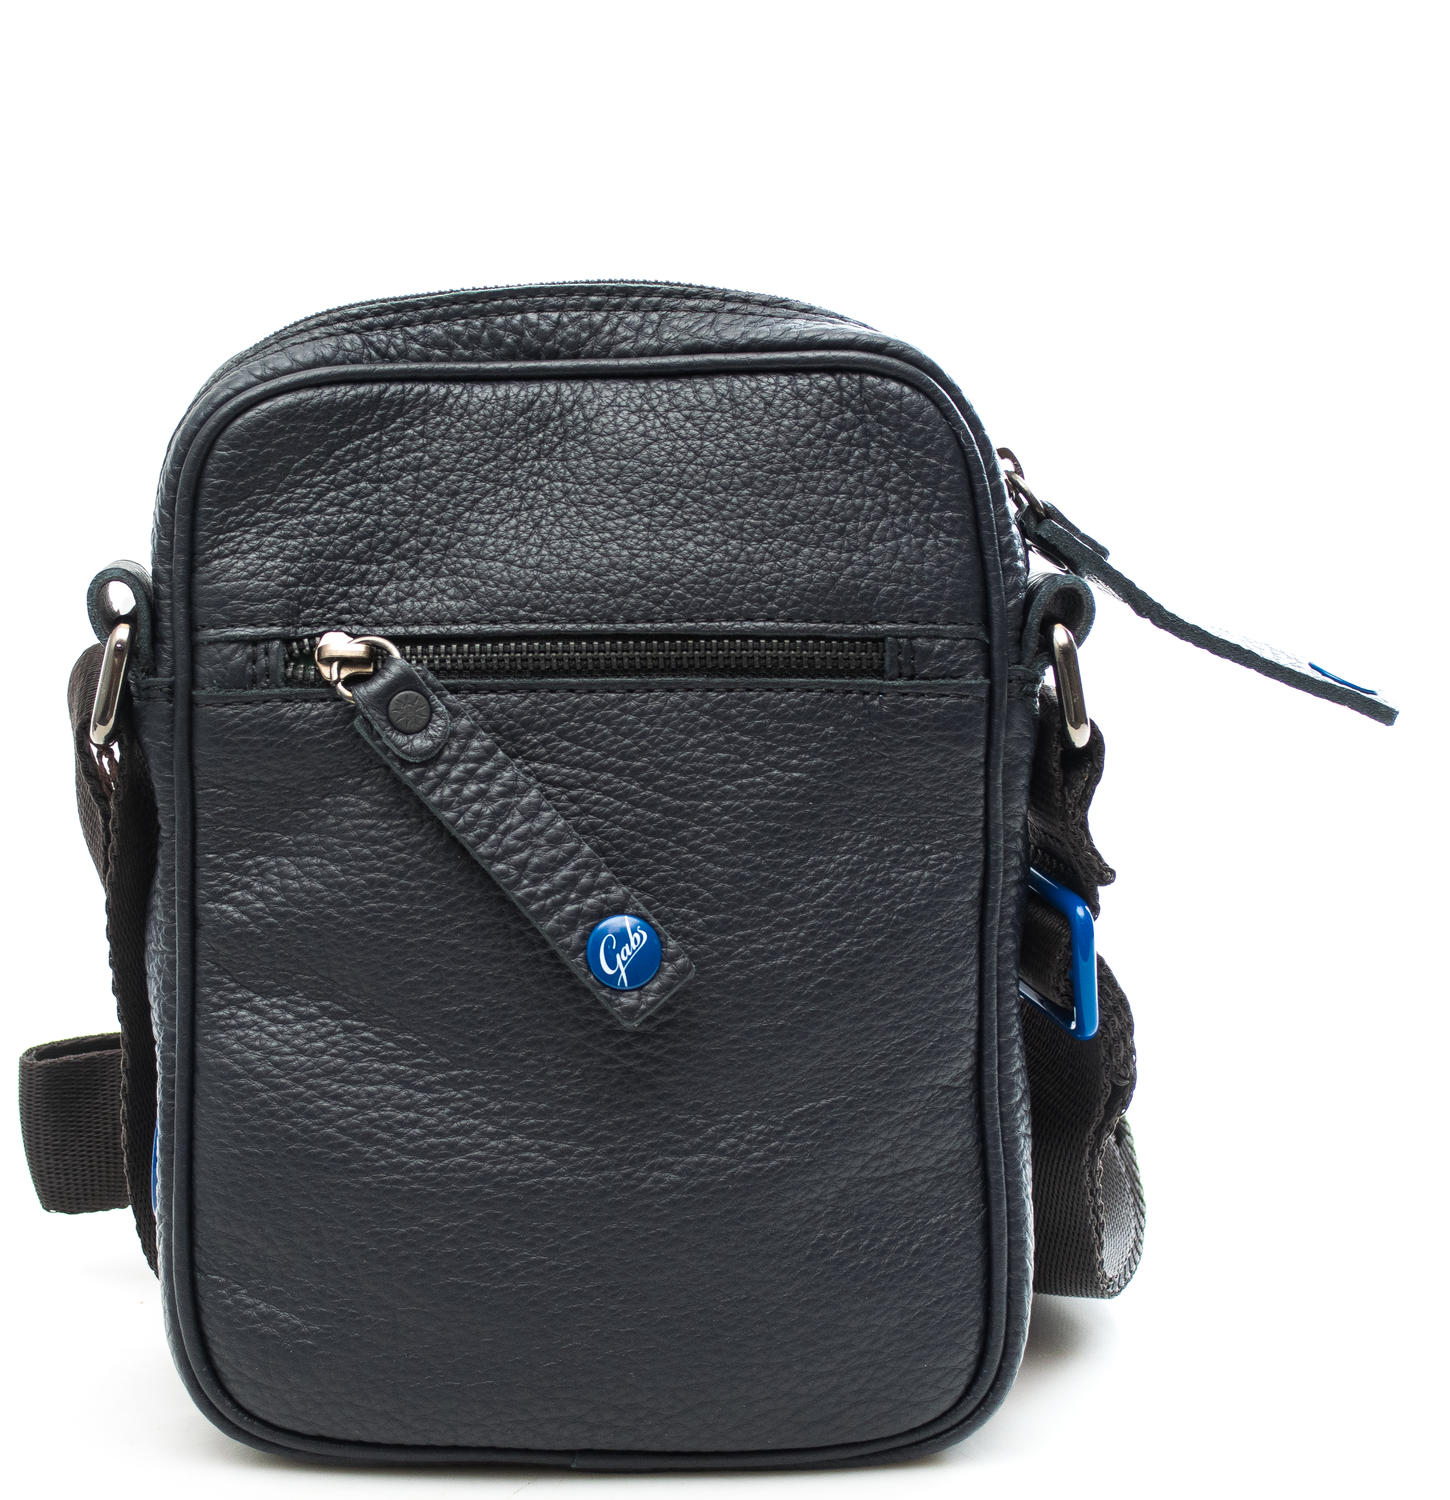 amazing selection newest collection usa cheap sale GABS bag